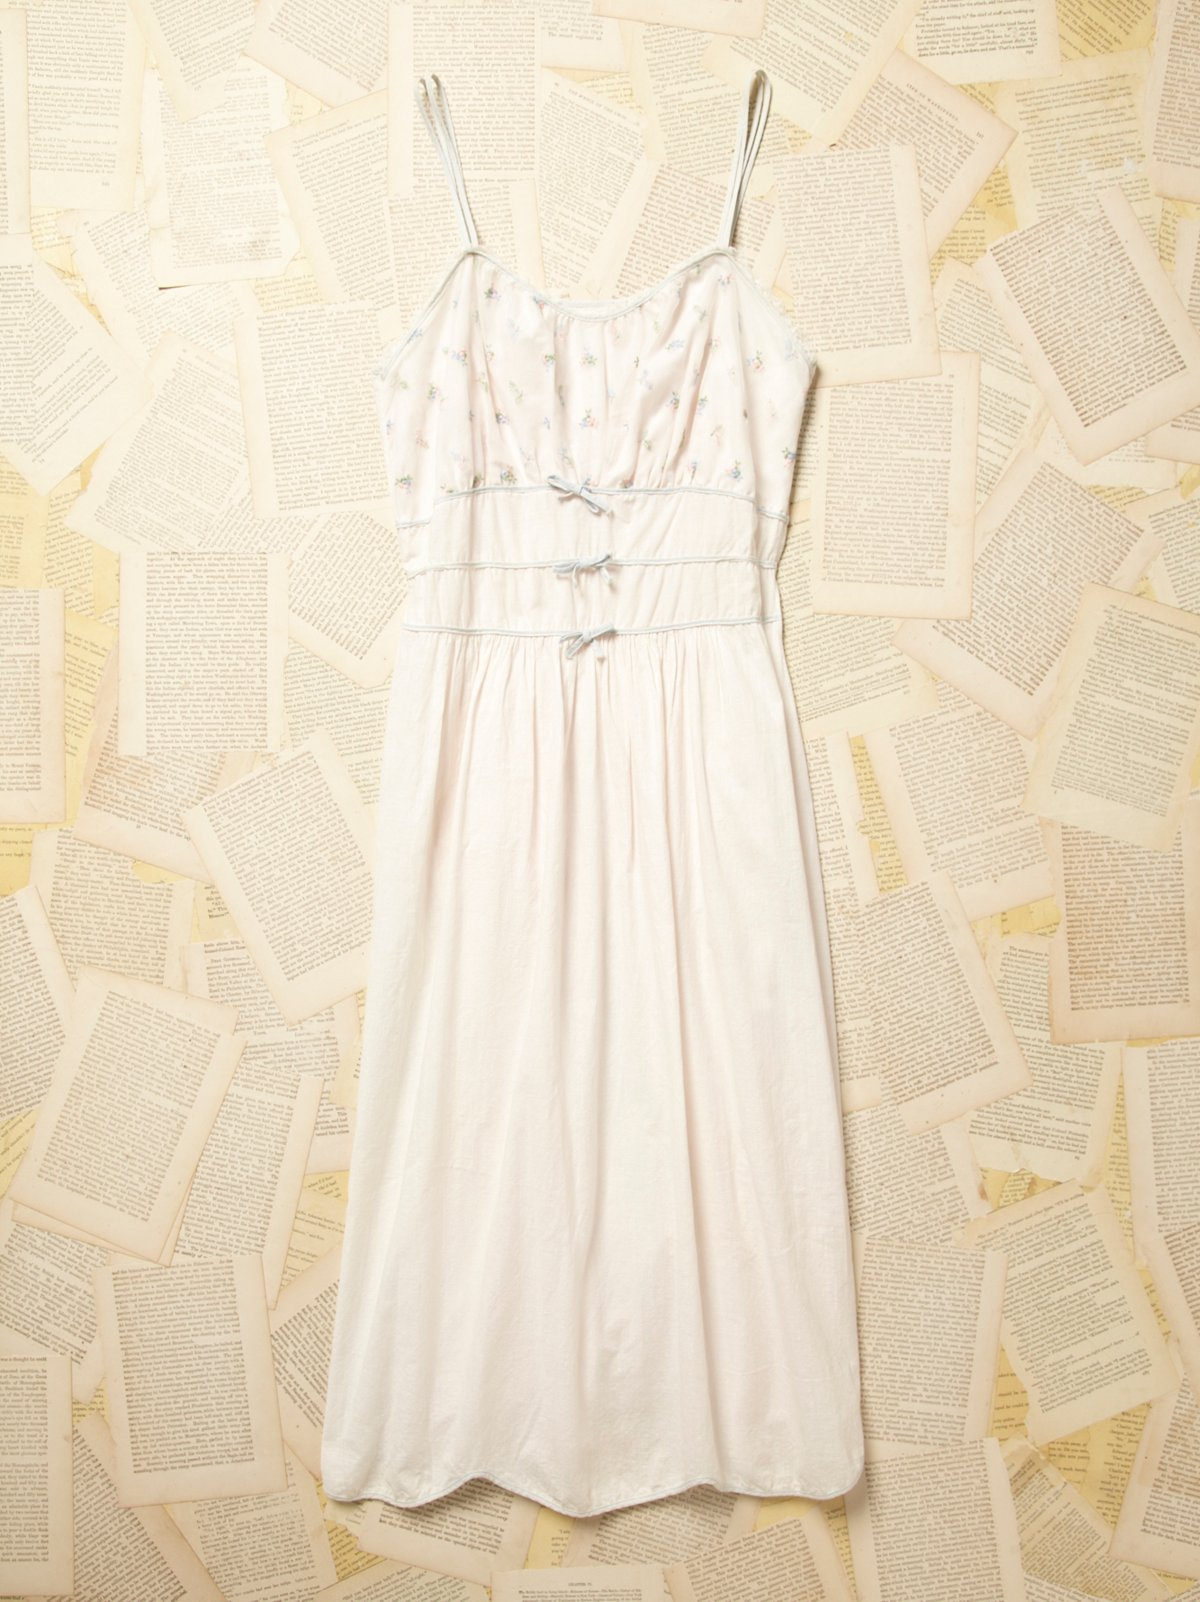 Vintage 1960s Cotton Dress with Embroidery